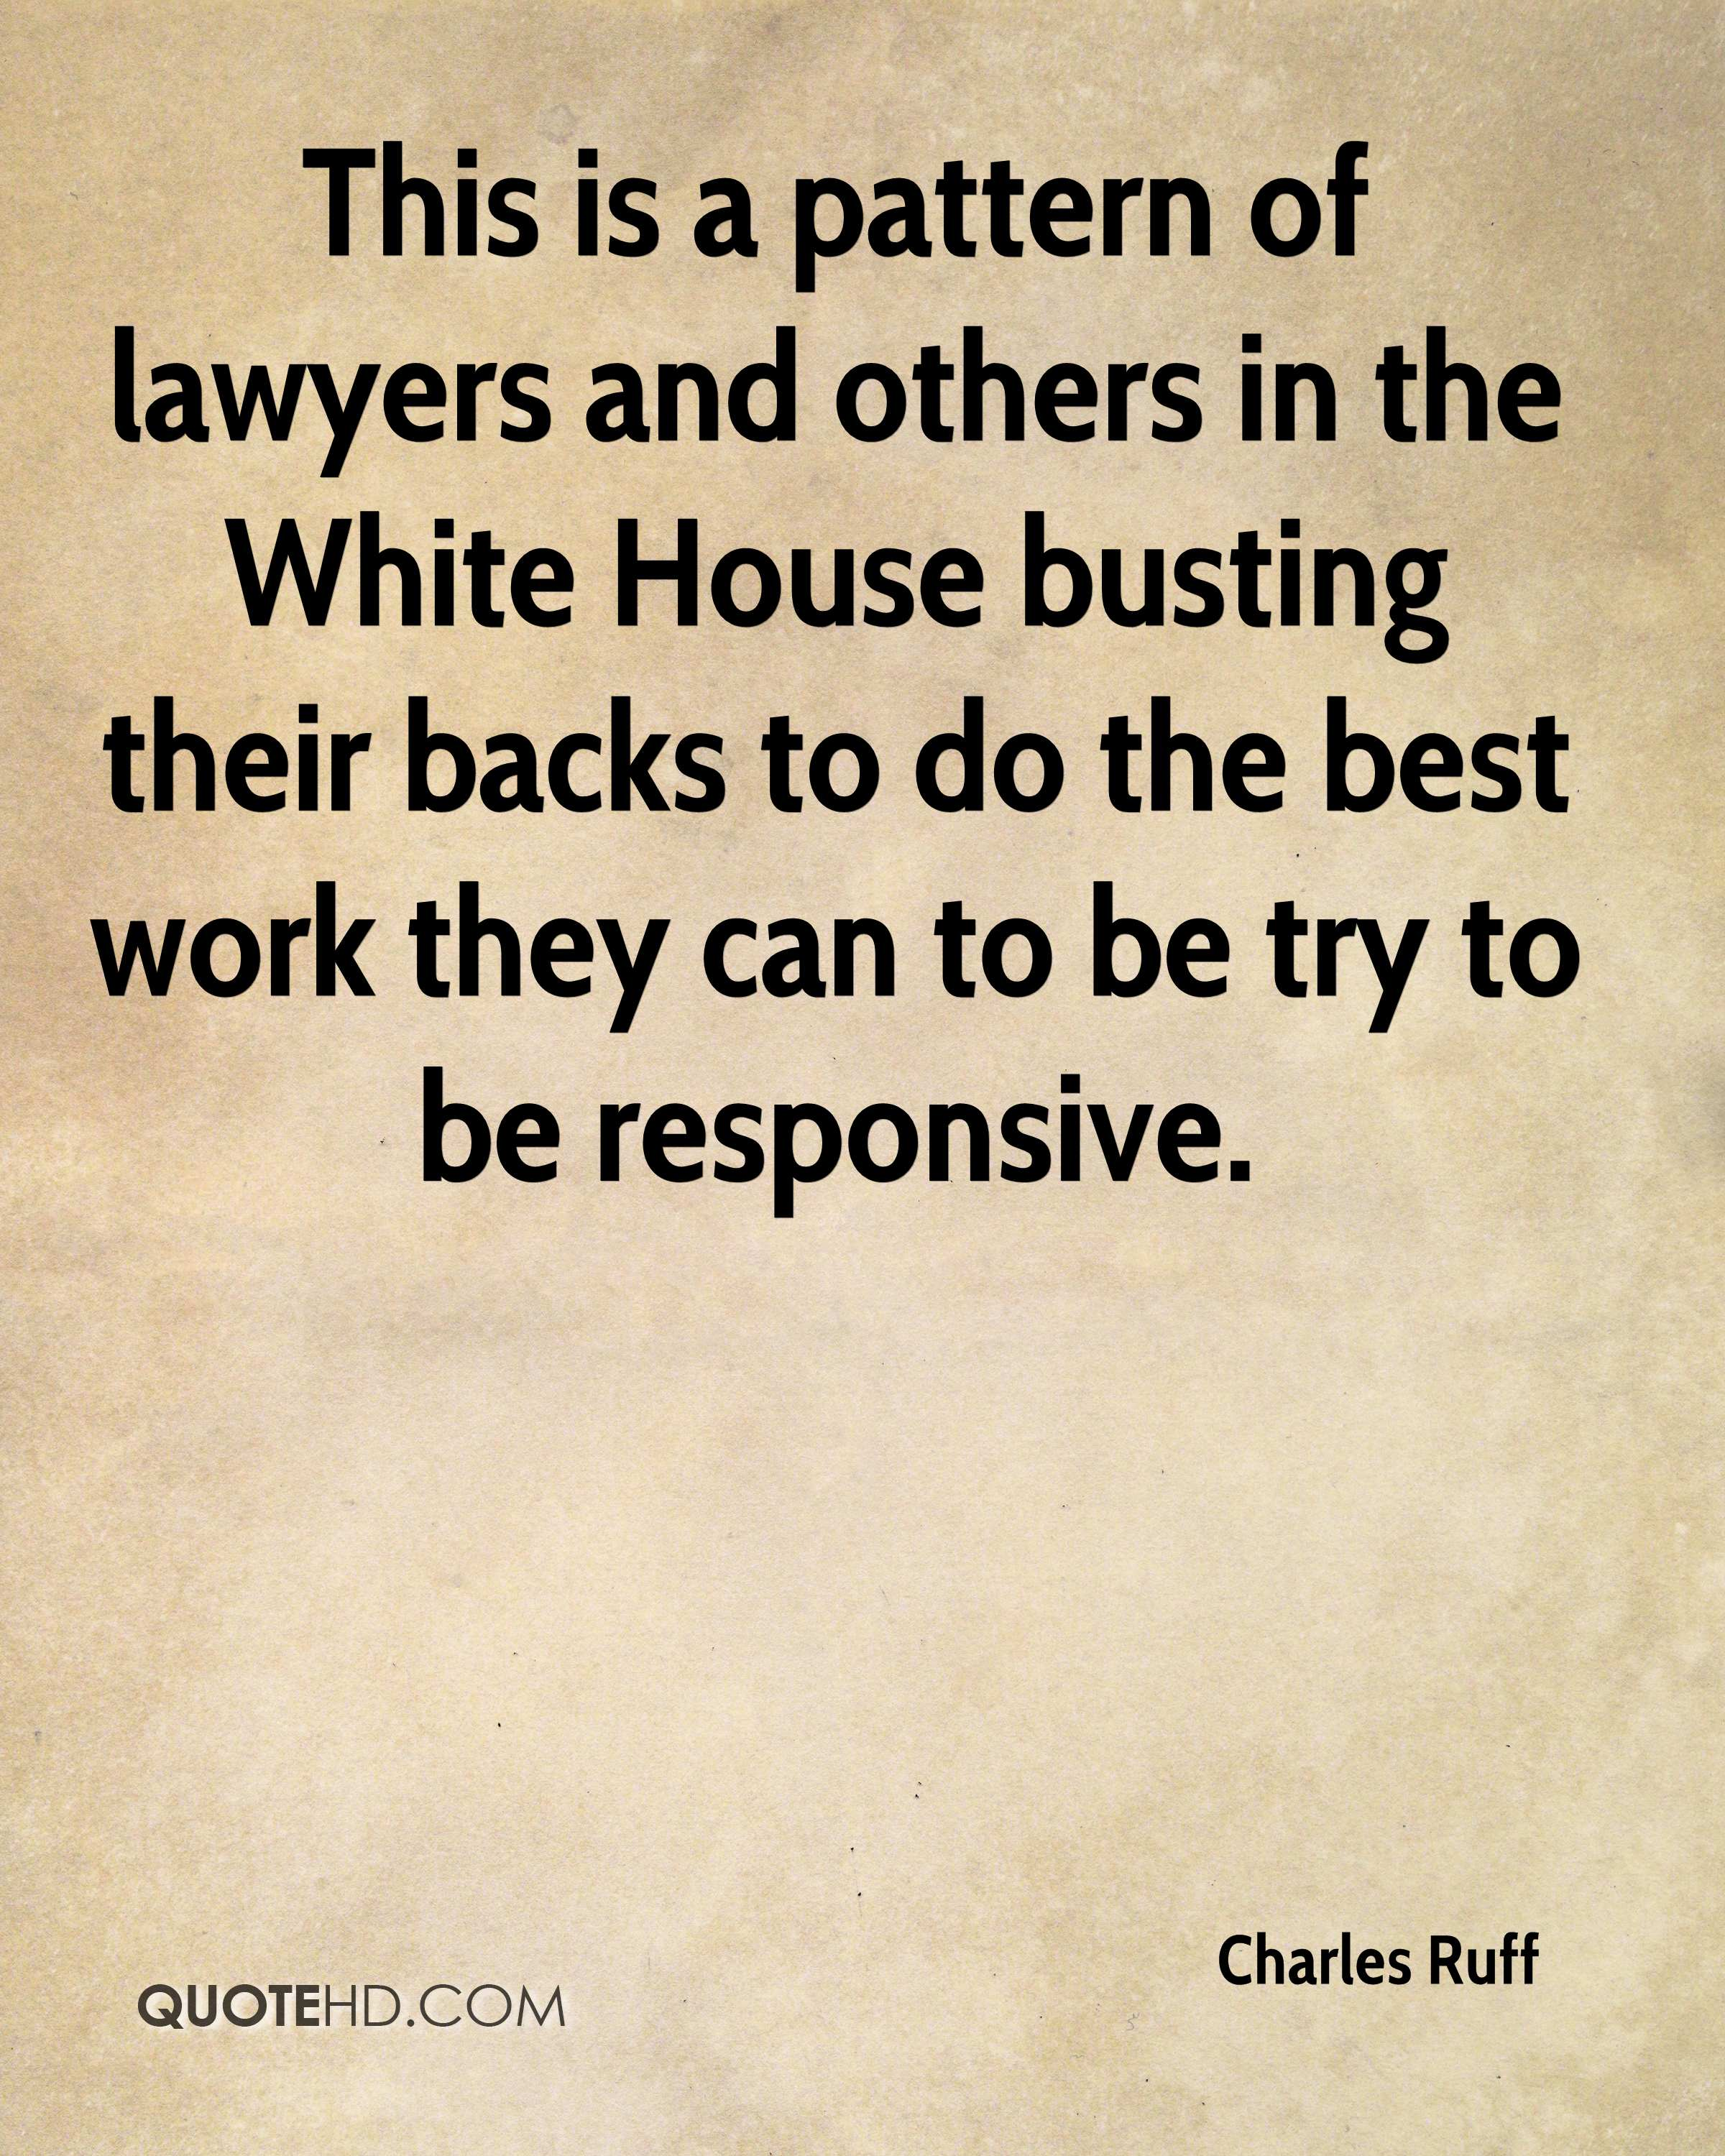 This is a pattern of lawyers and others in the White House busting their backs to do the best work they can to be try to be responsive.